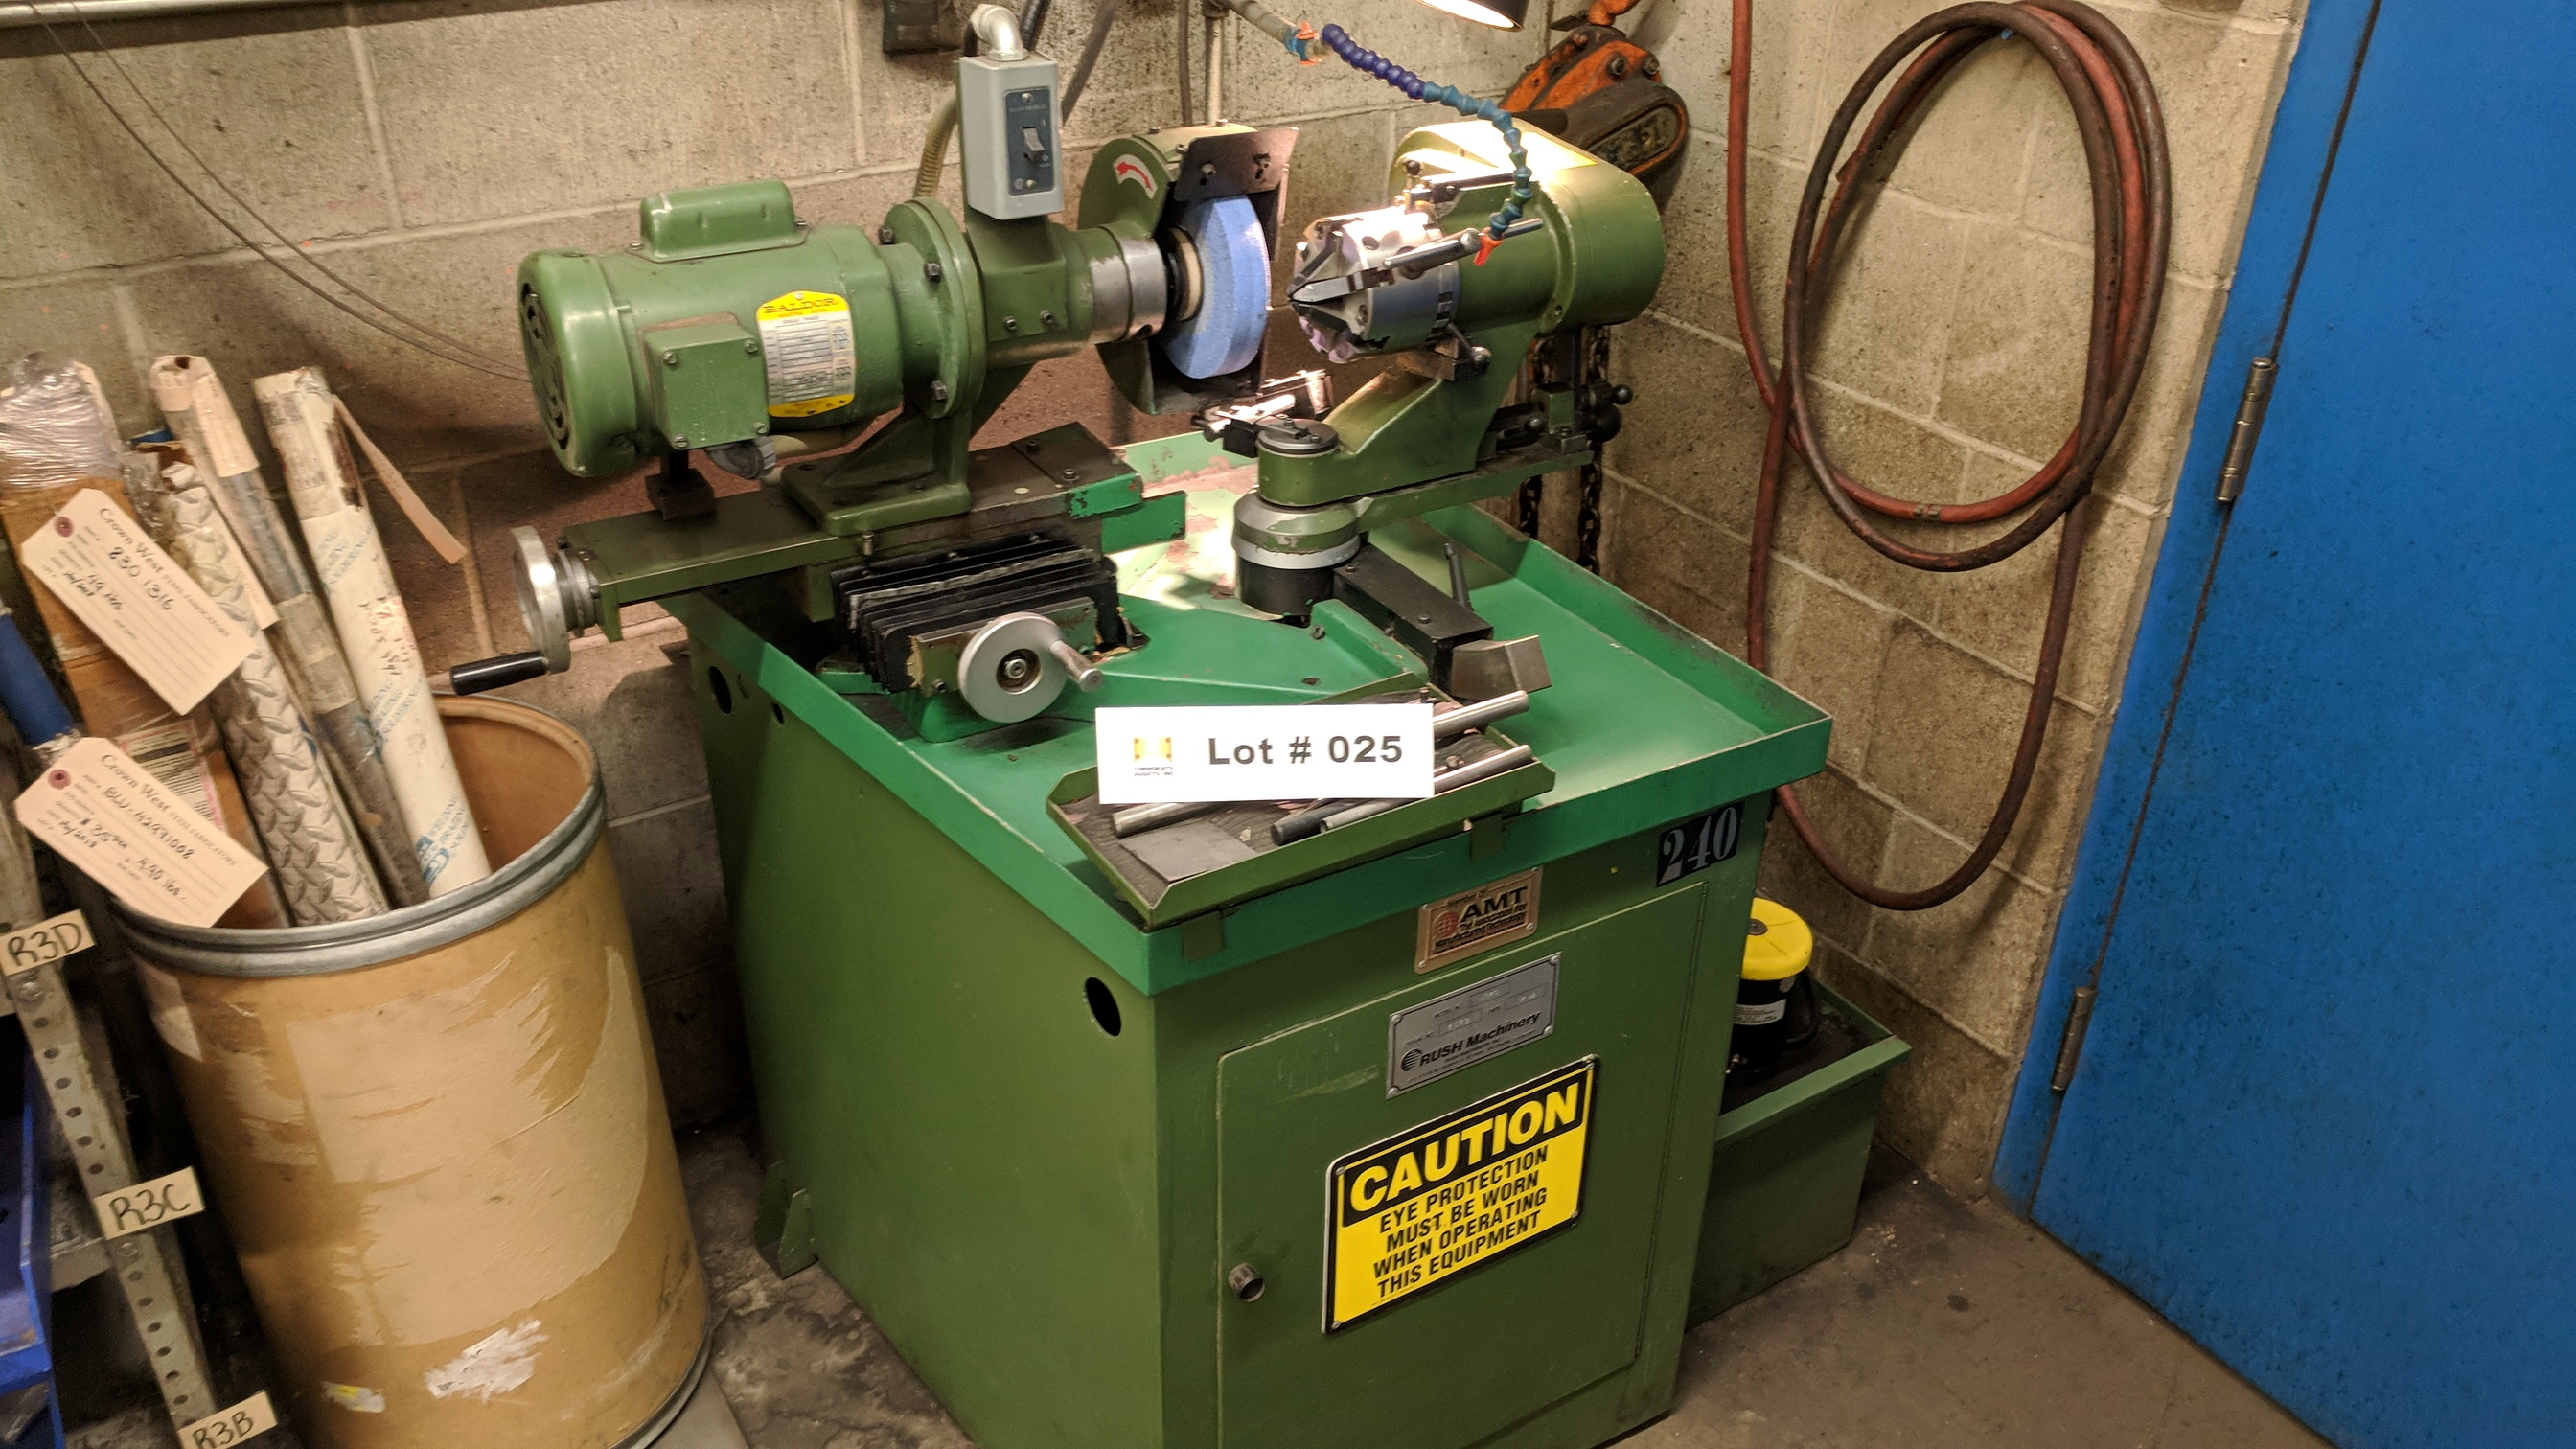 """RUSH MACHINERY (1999) 132C TOOL AND CUTTER GRINDER WITH 0.80"""" TO 1.25"""" CAPACITY, S/N 2380 (CI)"""